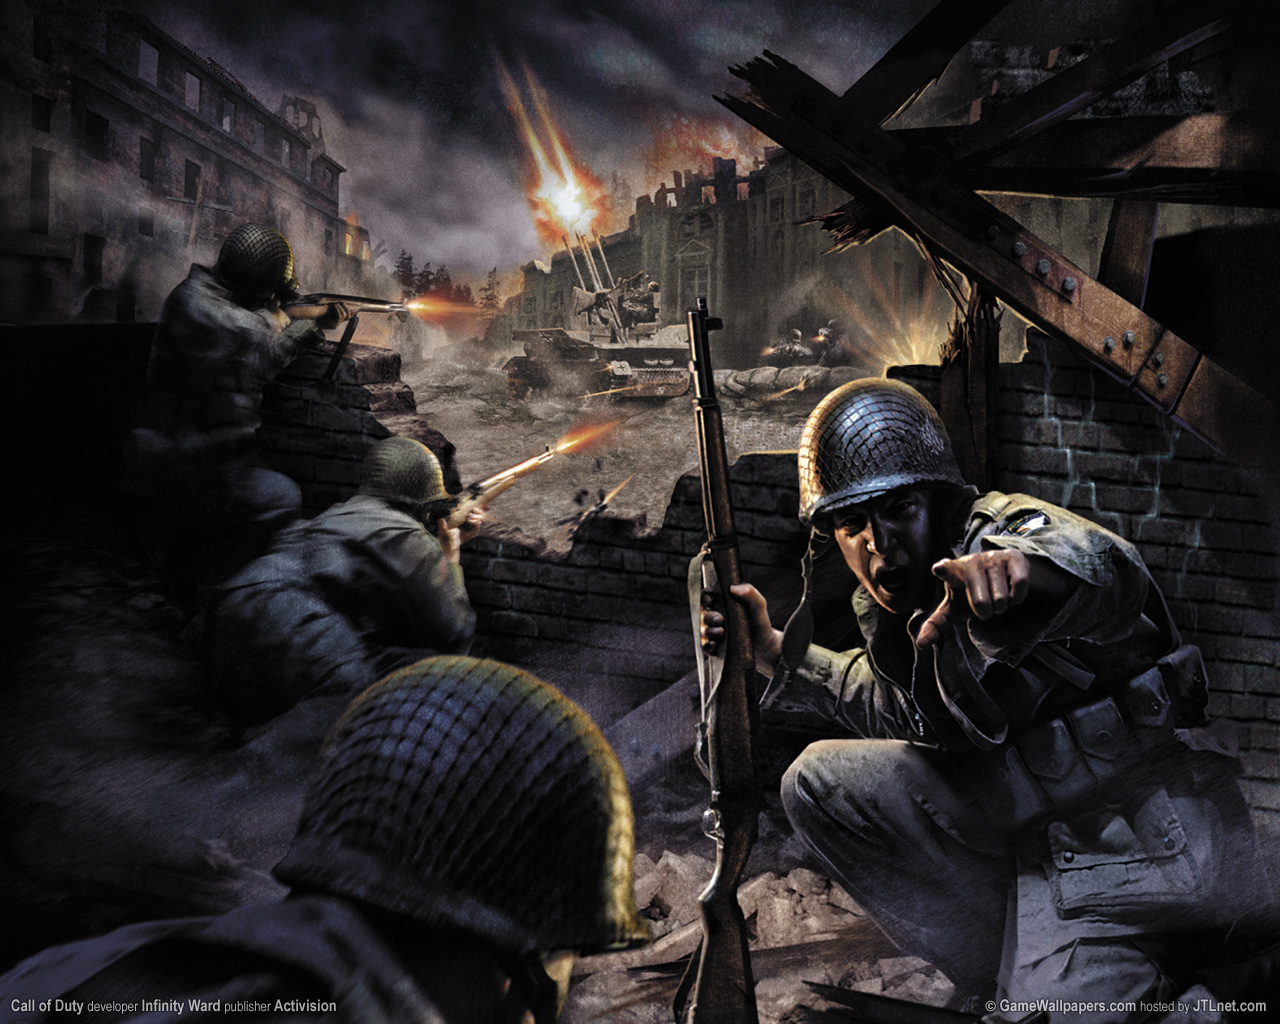 Hd wallpapers call of duty 2 hd wallpapers - Cod ww2 4k pc ...